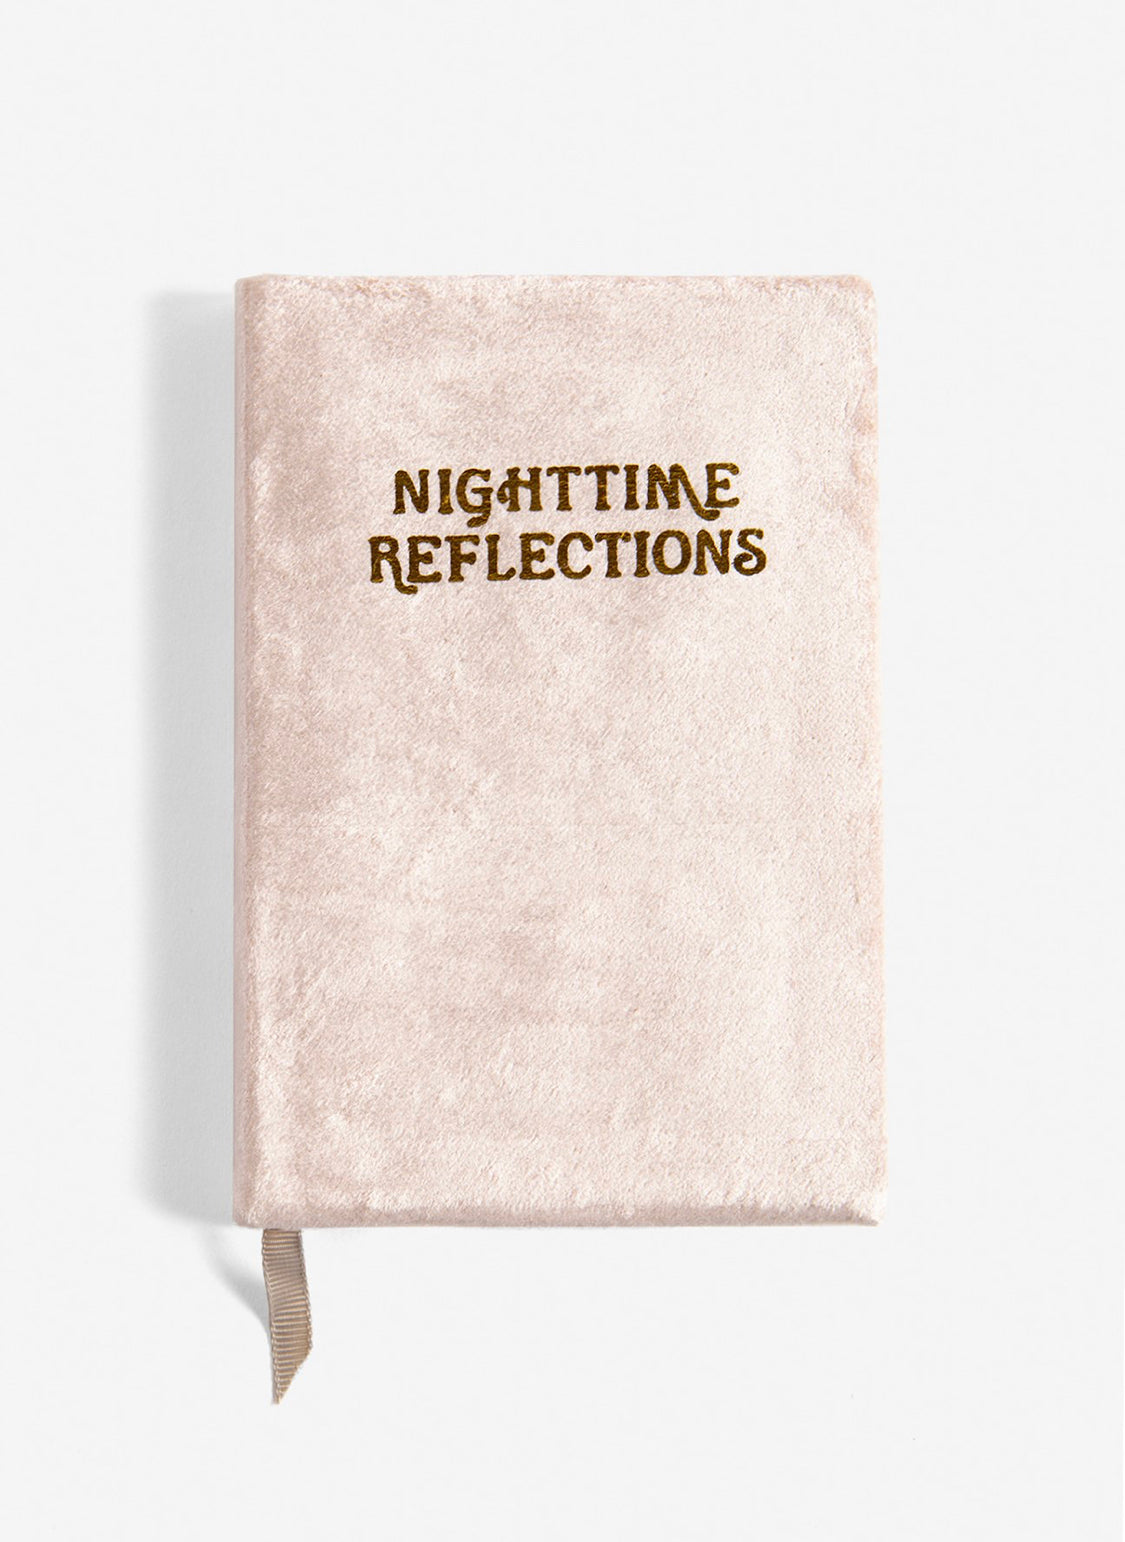 Nighttime Reflections Guided Journal